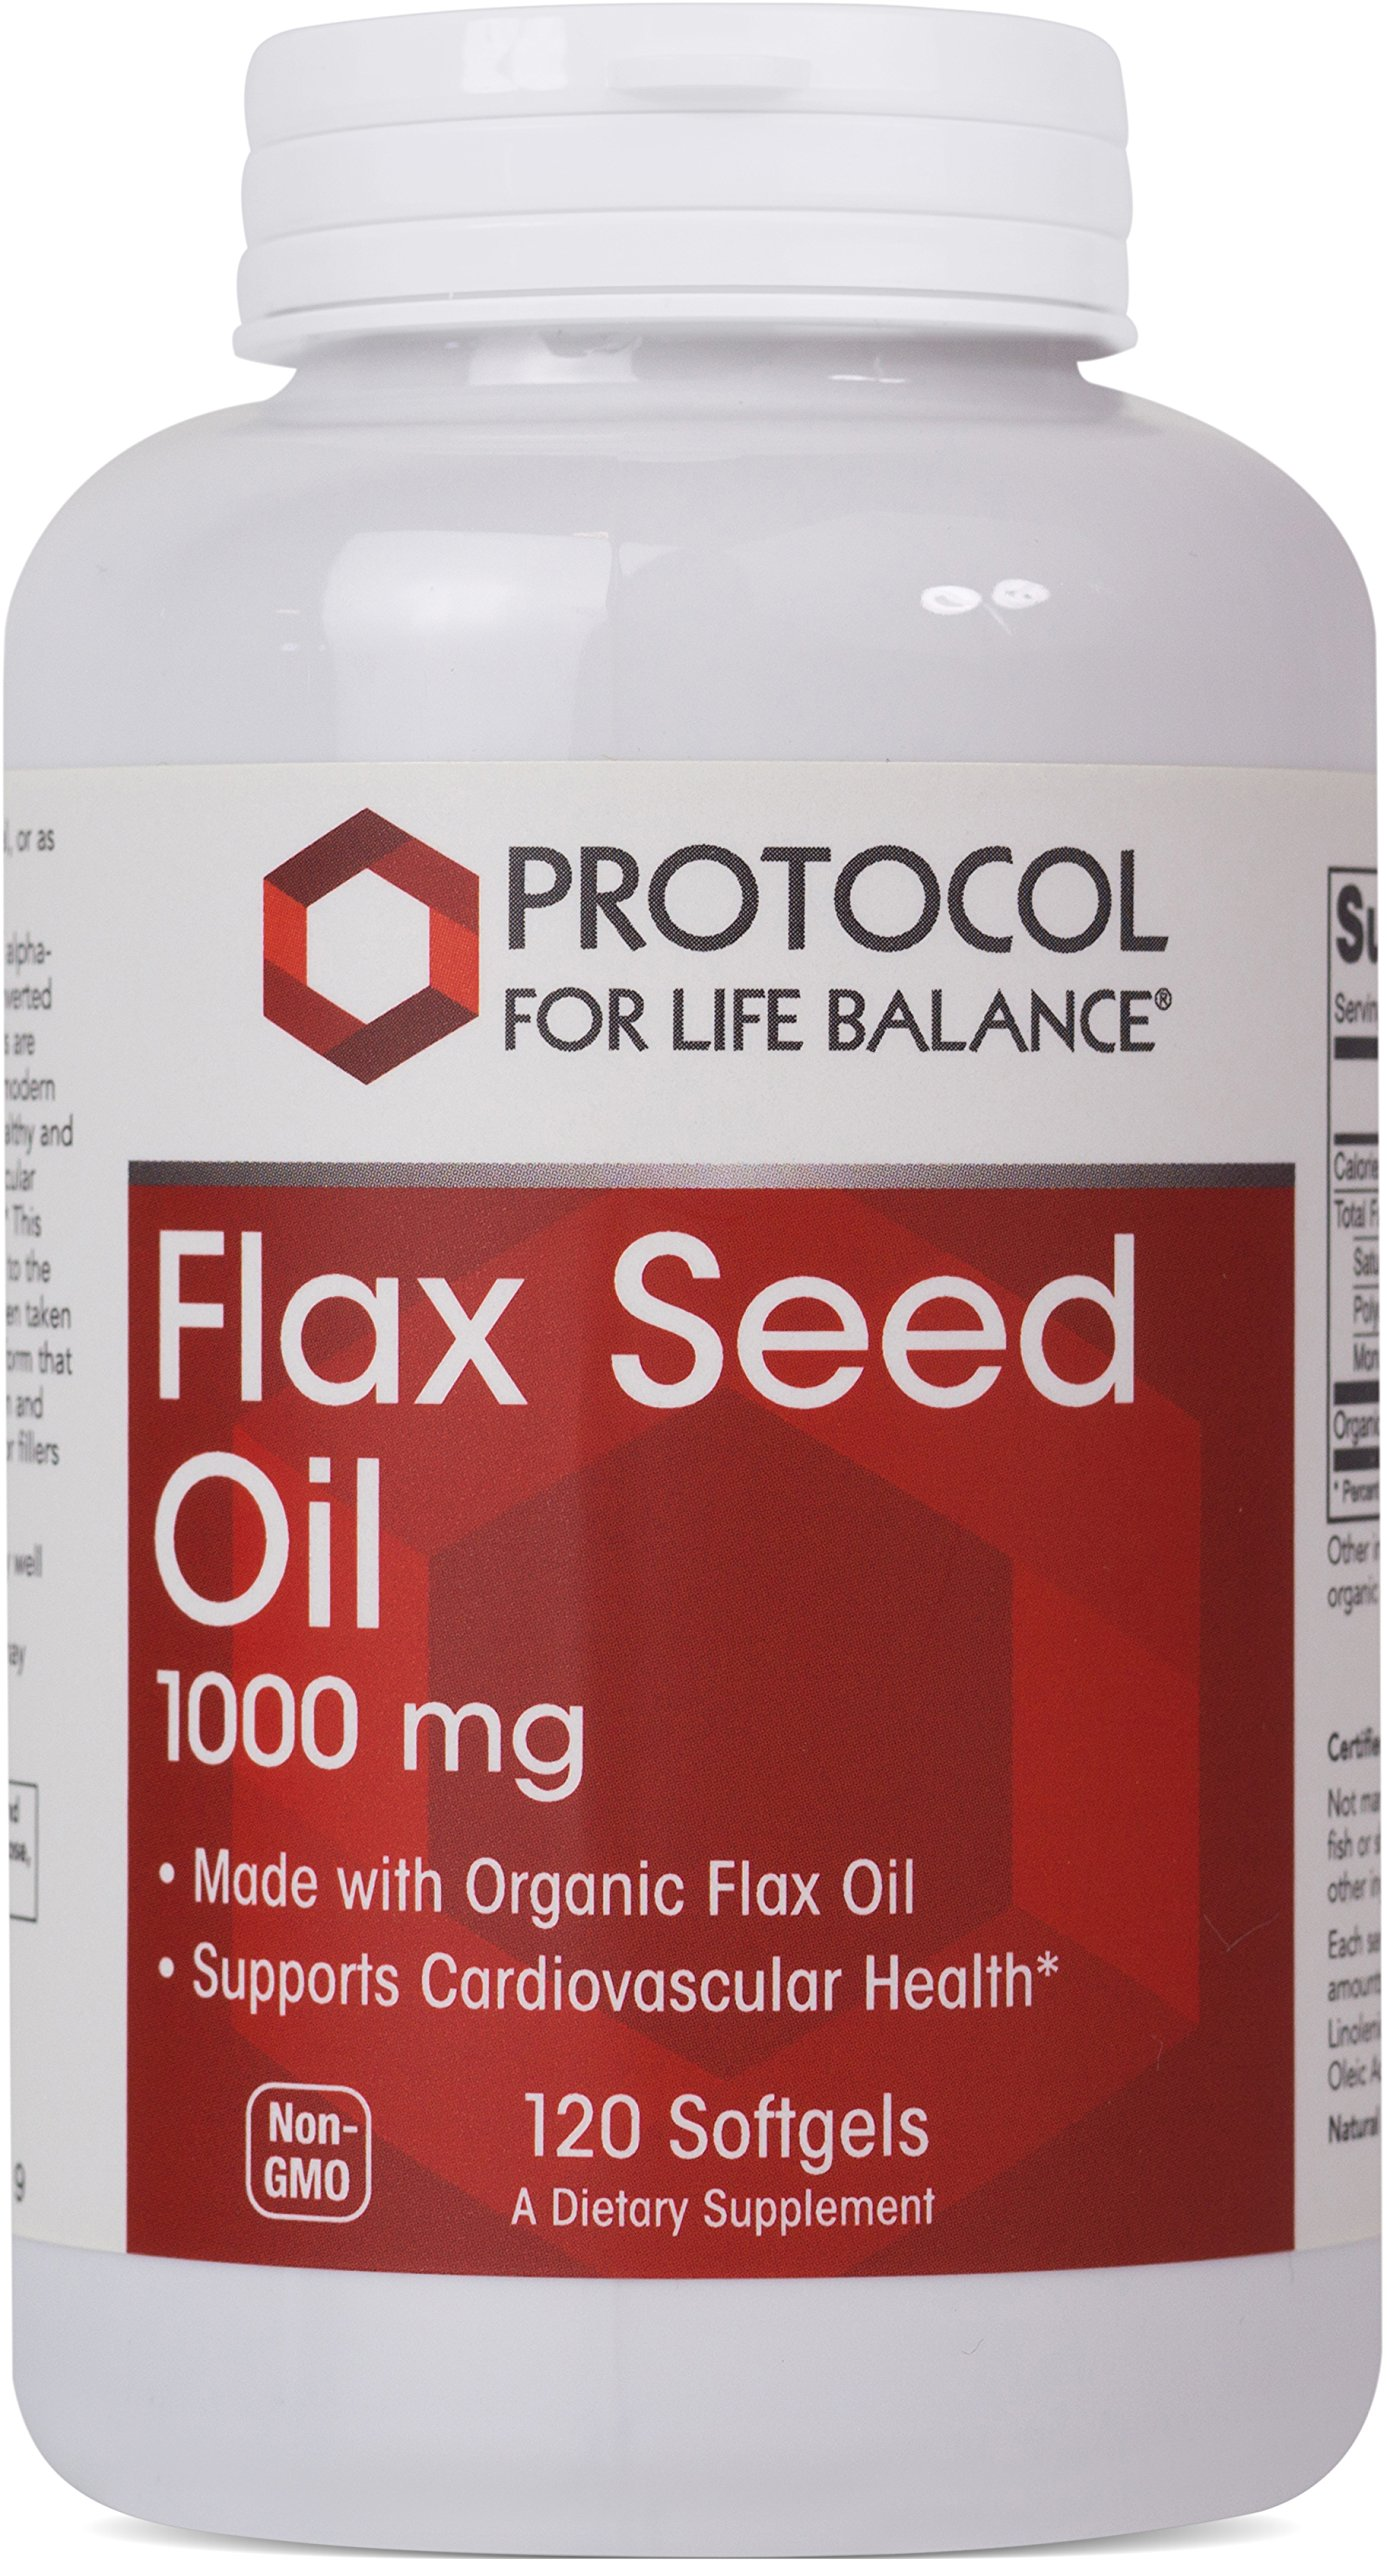 Protocol For Life Balance - Flax Seed Oil 1000 mg - Made with Organic Flax Oil to Support Cardiovascular Heart Health, Appetite Suppressant, Constipation Relief, & Improve Gut Health - 120 Softgels